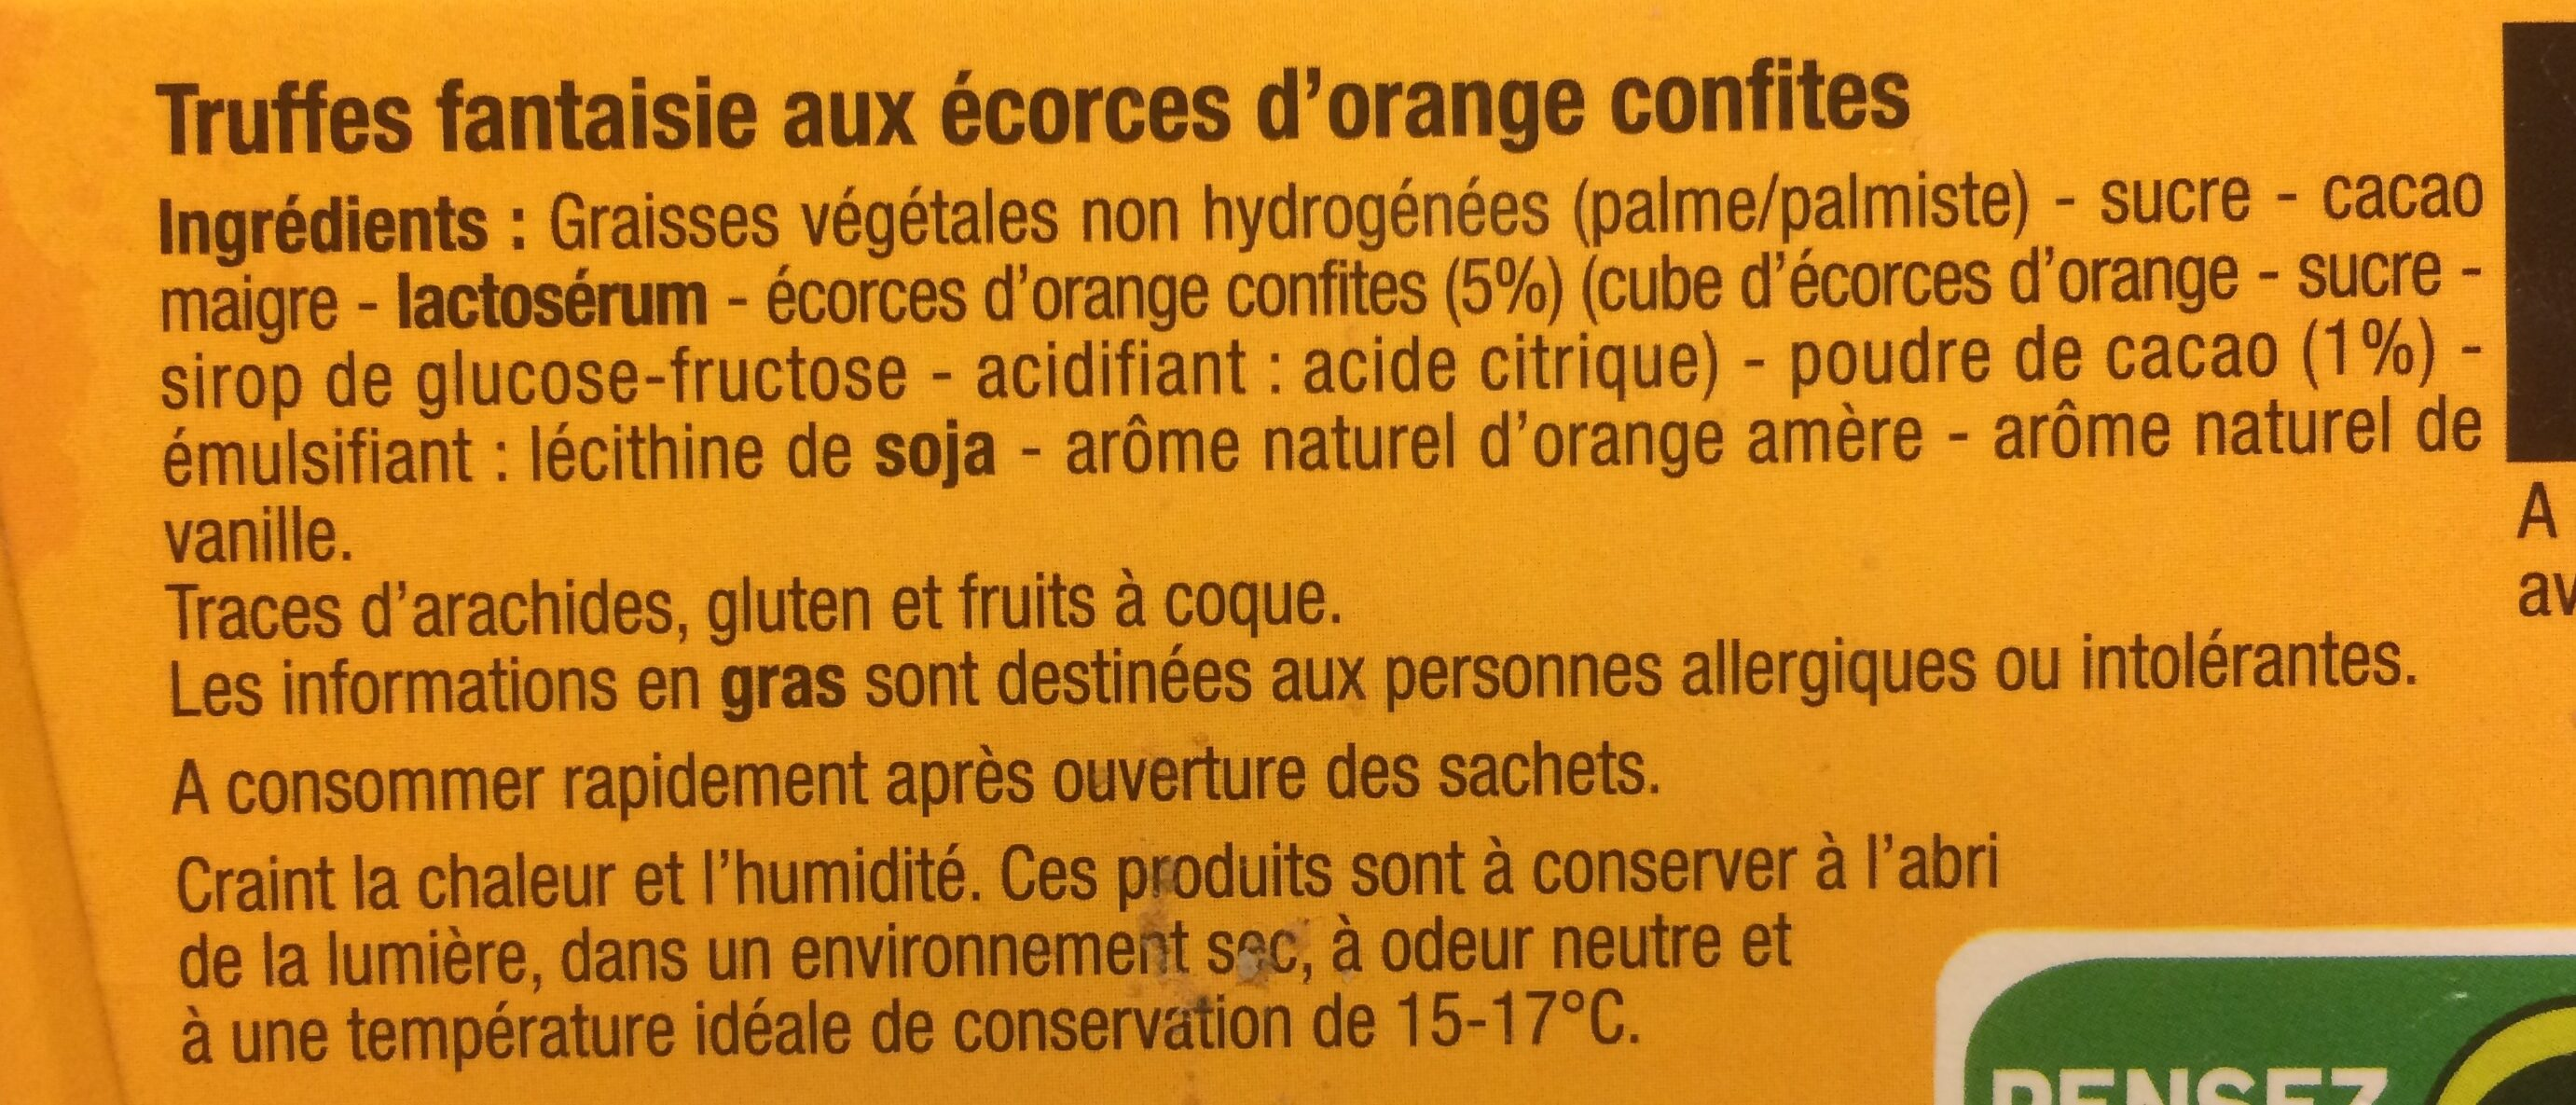 Truffes ecorces d'orange - Ingredients